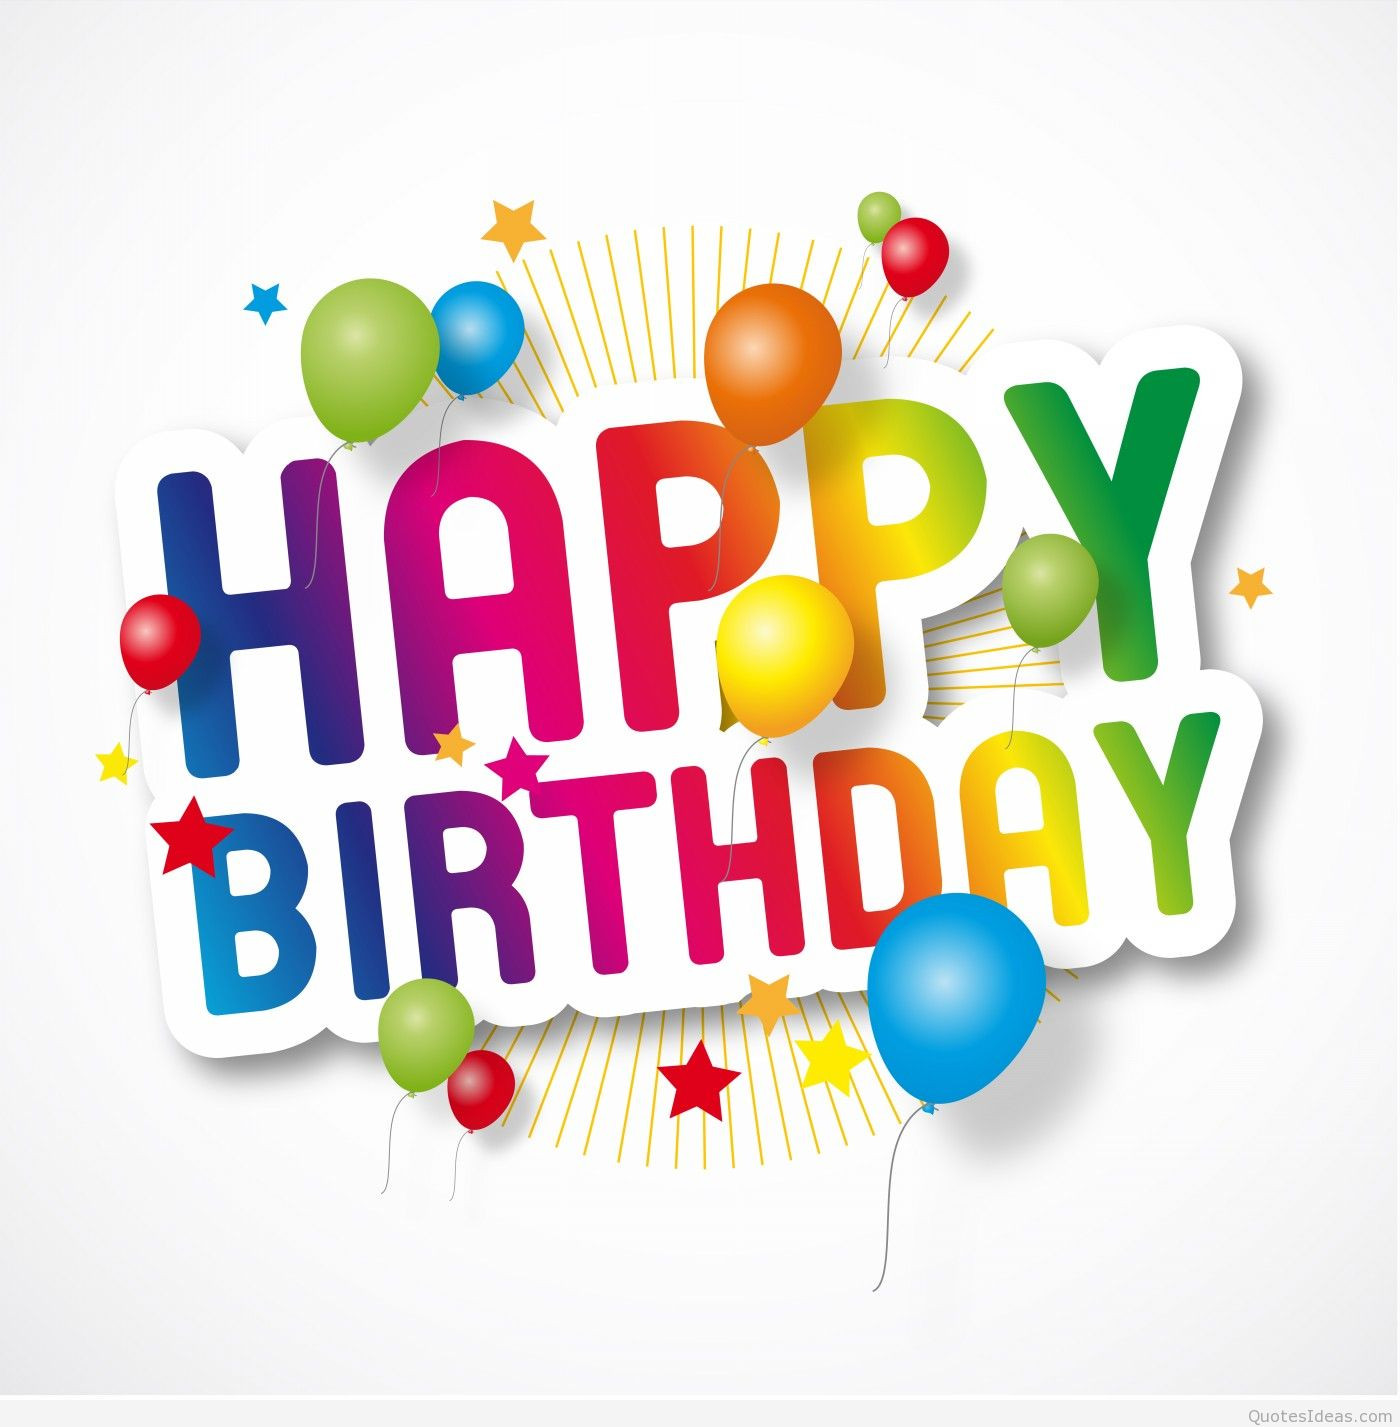 Best ideas about A Birthday Wish . Save or Pin Happy birthday cards wishes messages 2015 2016 Now.